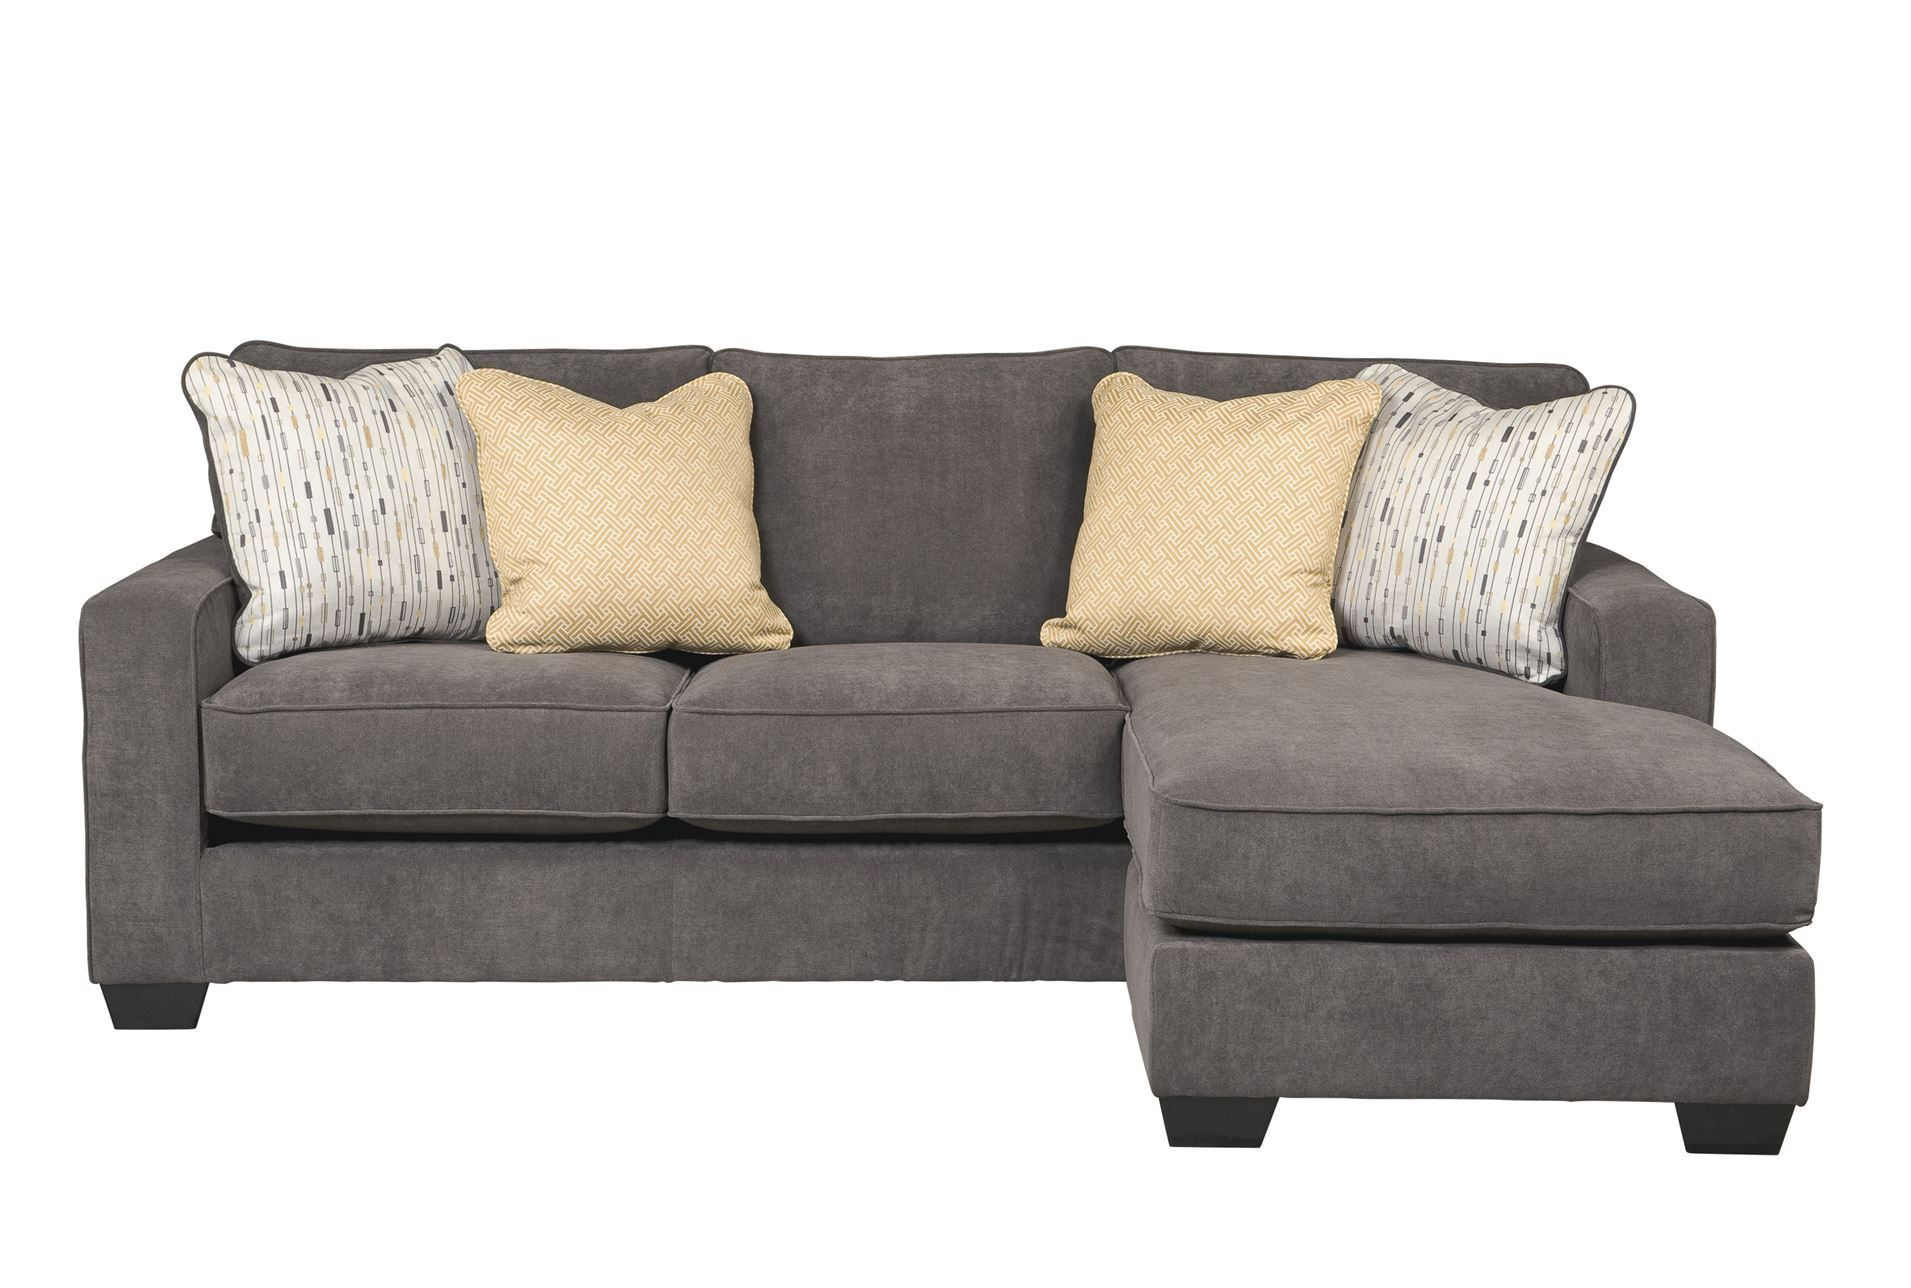 couch broyhill sectional couches your facing furniture room piece for small modern chai traditional ideas chaise idea with living sofa sleeper arm left